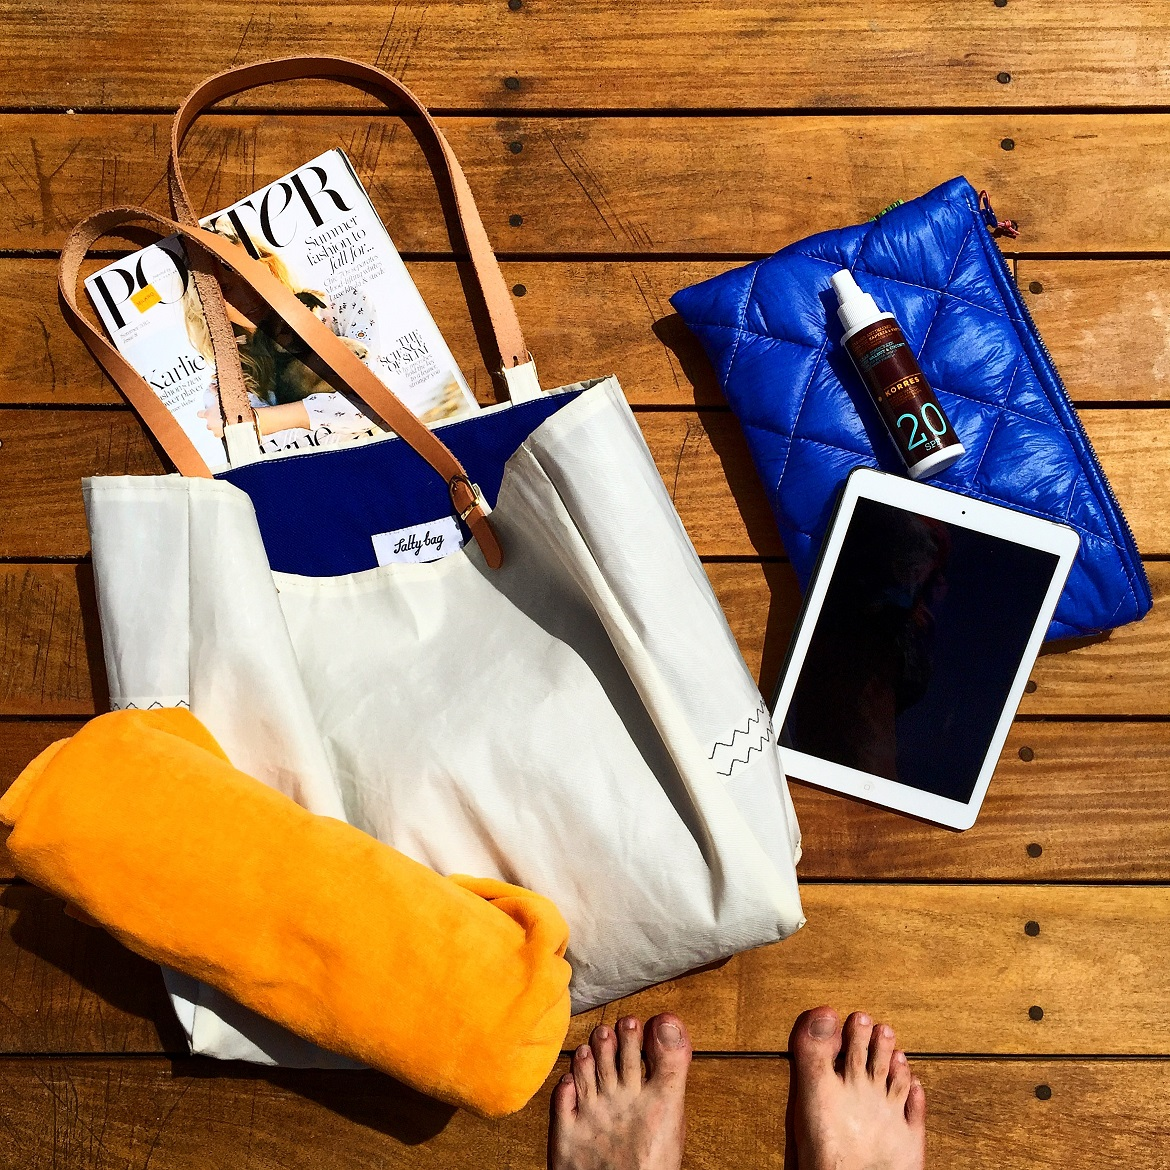 "On the deck: holdall Salty Bag ""Armathea"", clutch Salty Bag ""Atokos R2R"", sunscreen SPF20 by Korres Natural Products, Porter magazine, iPad & Nikki Beach towel"